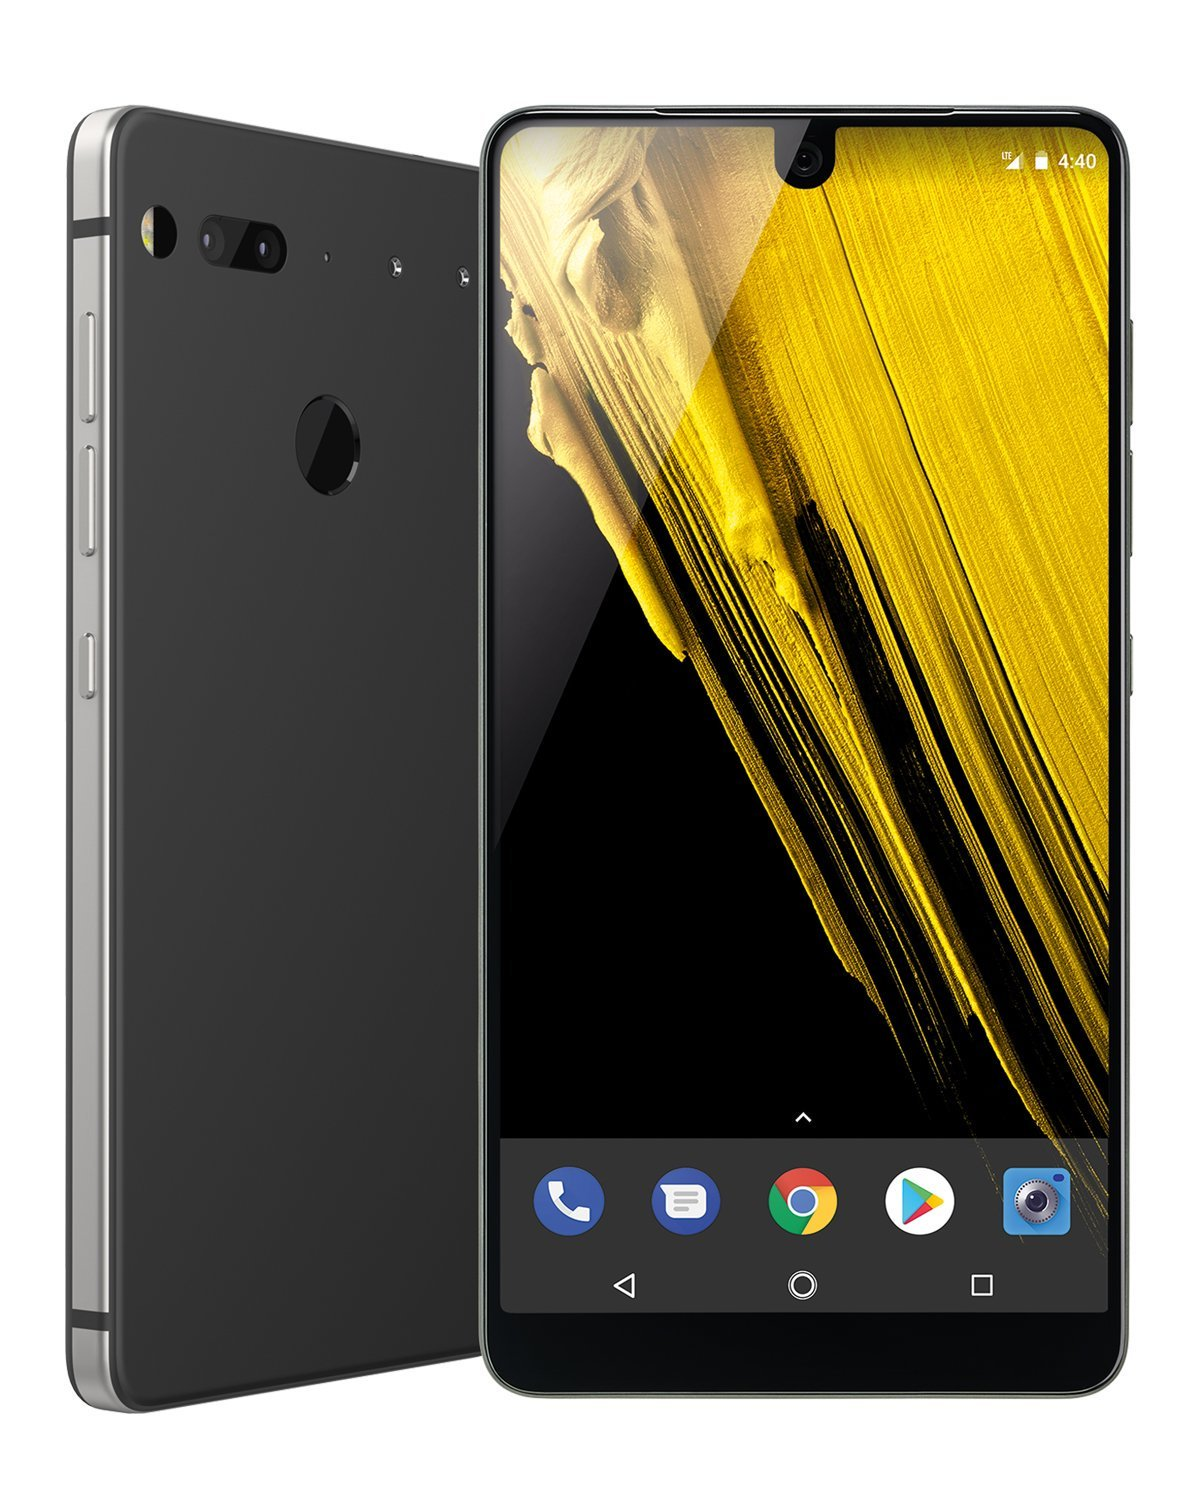 Essential PH-1 Halo Grey